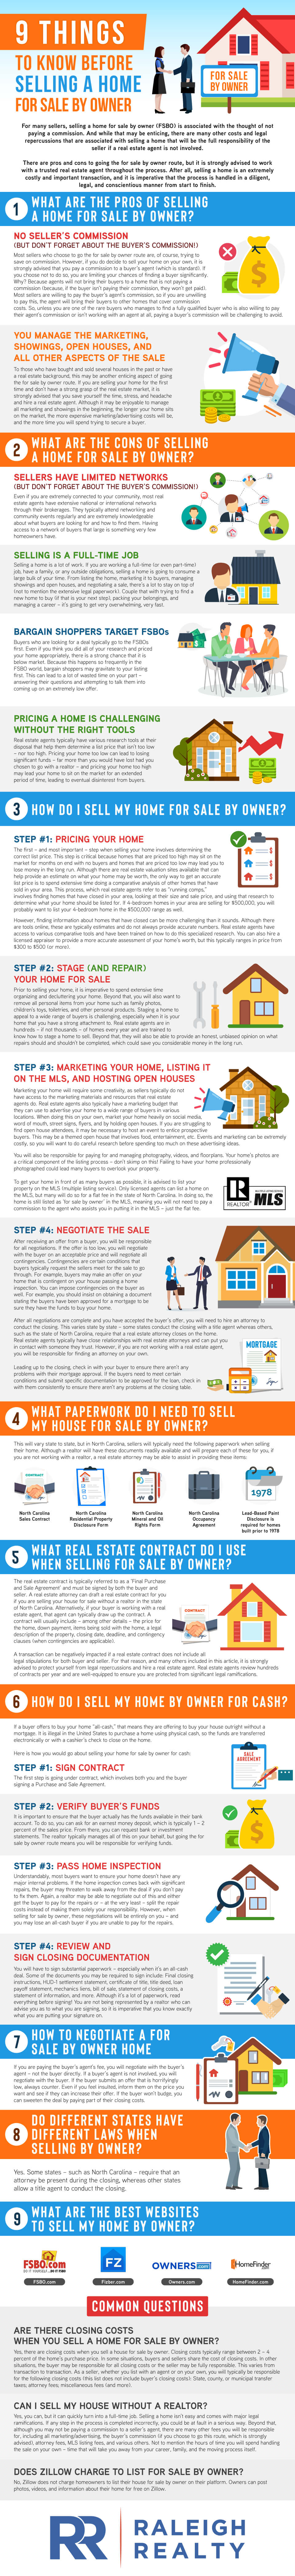 Selling home for sale by owner pros, cons - How do I sell my home for sale by owner in Raleigh, NC